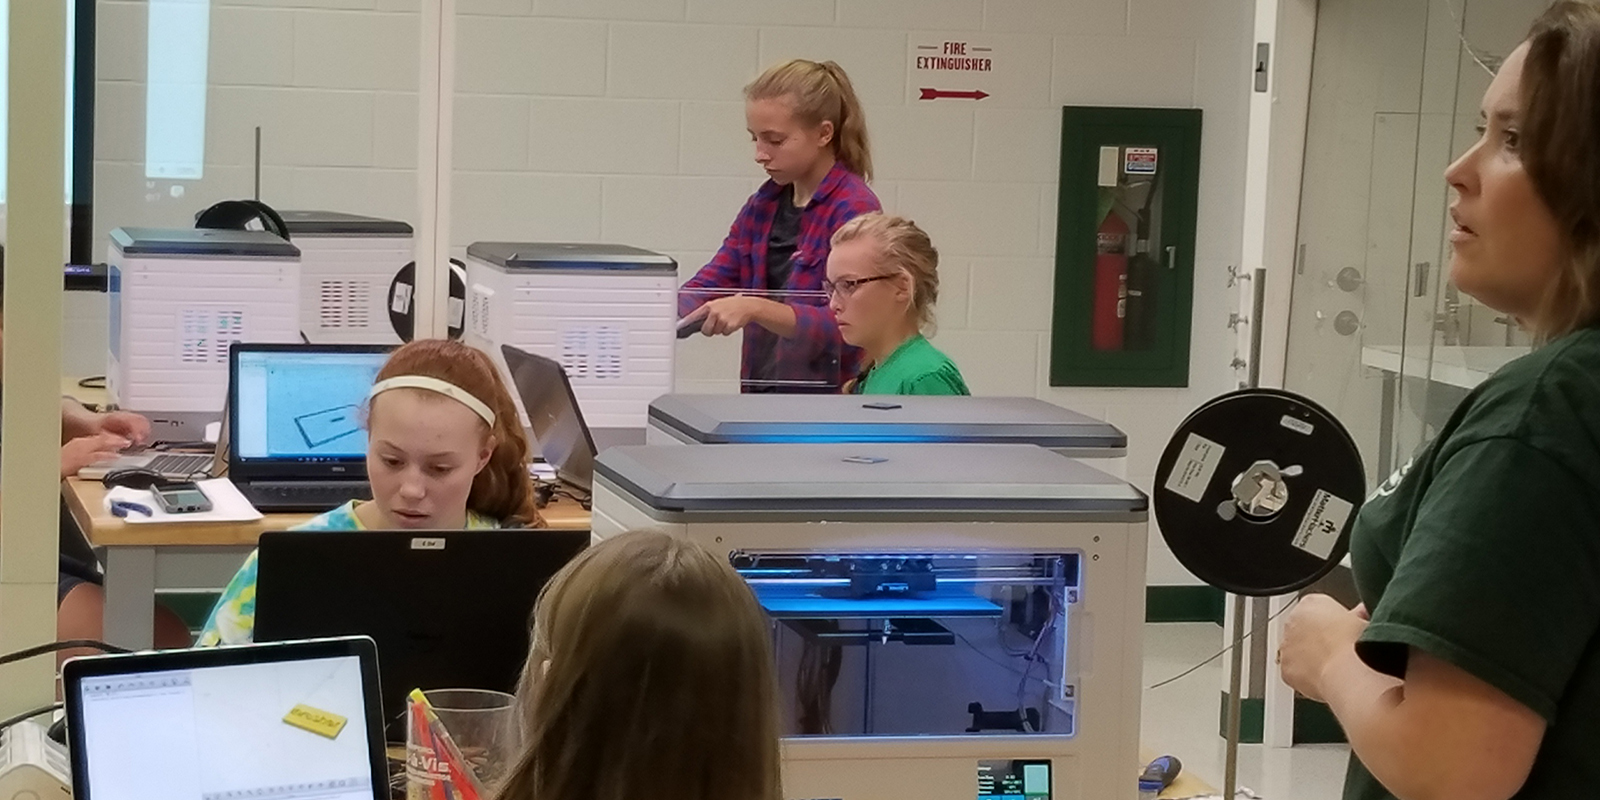 Middle school girls and their teacher in a computer lab using 3D printers